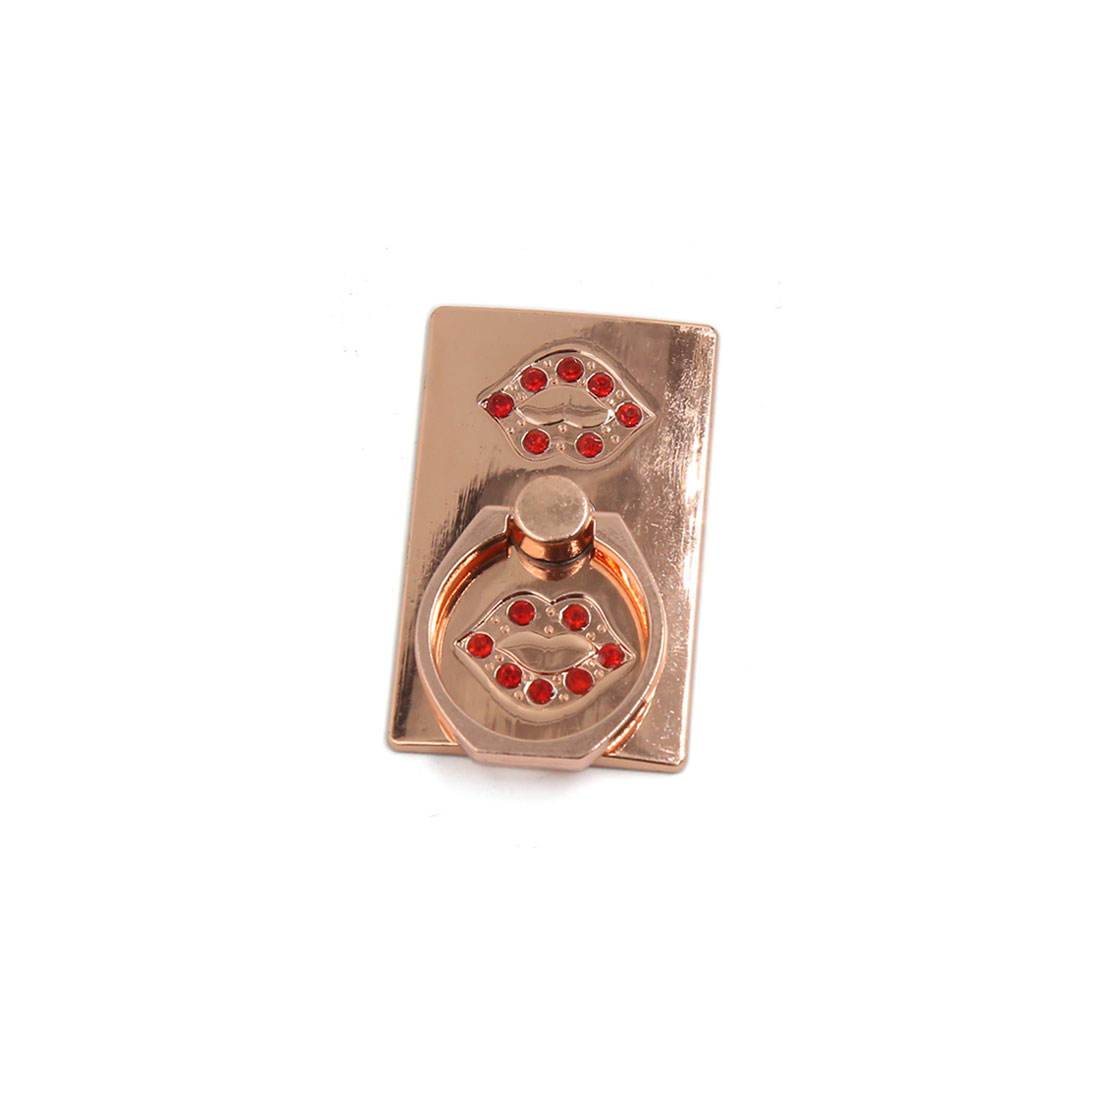 Champagne Color Red Faux Crystal Decor Free Angle Smart Phone Finger Ring Holder